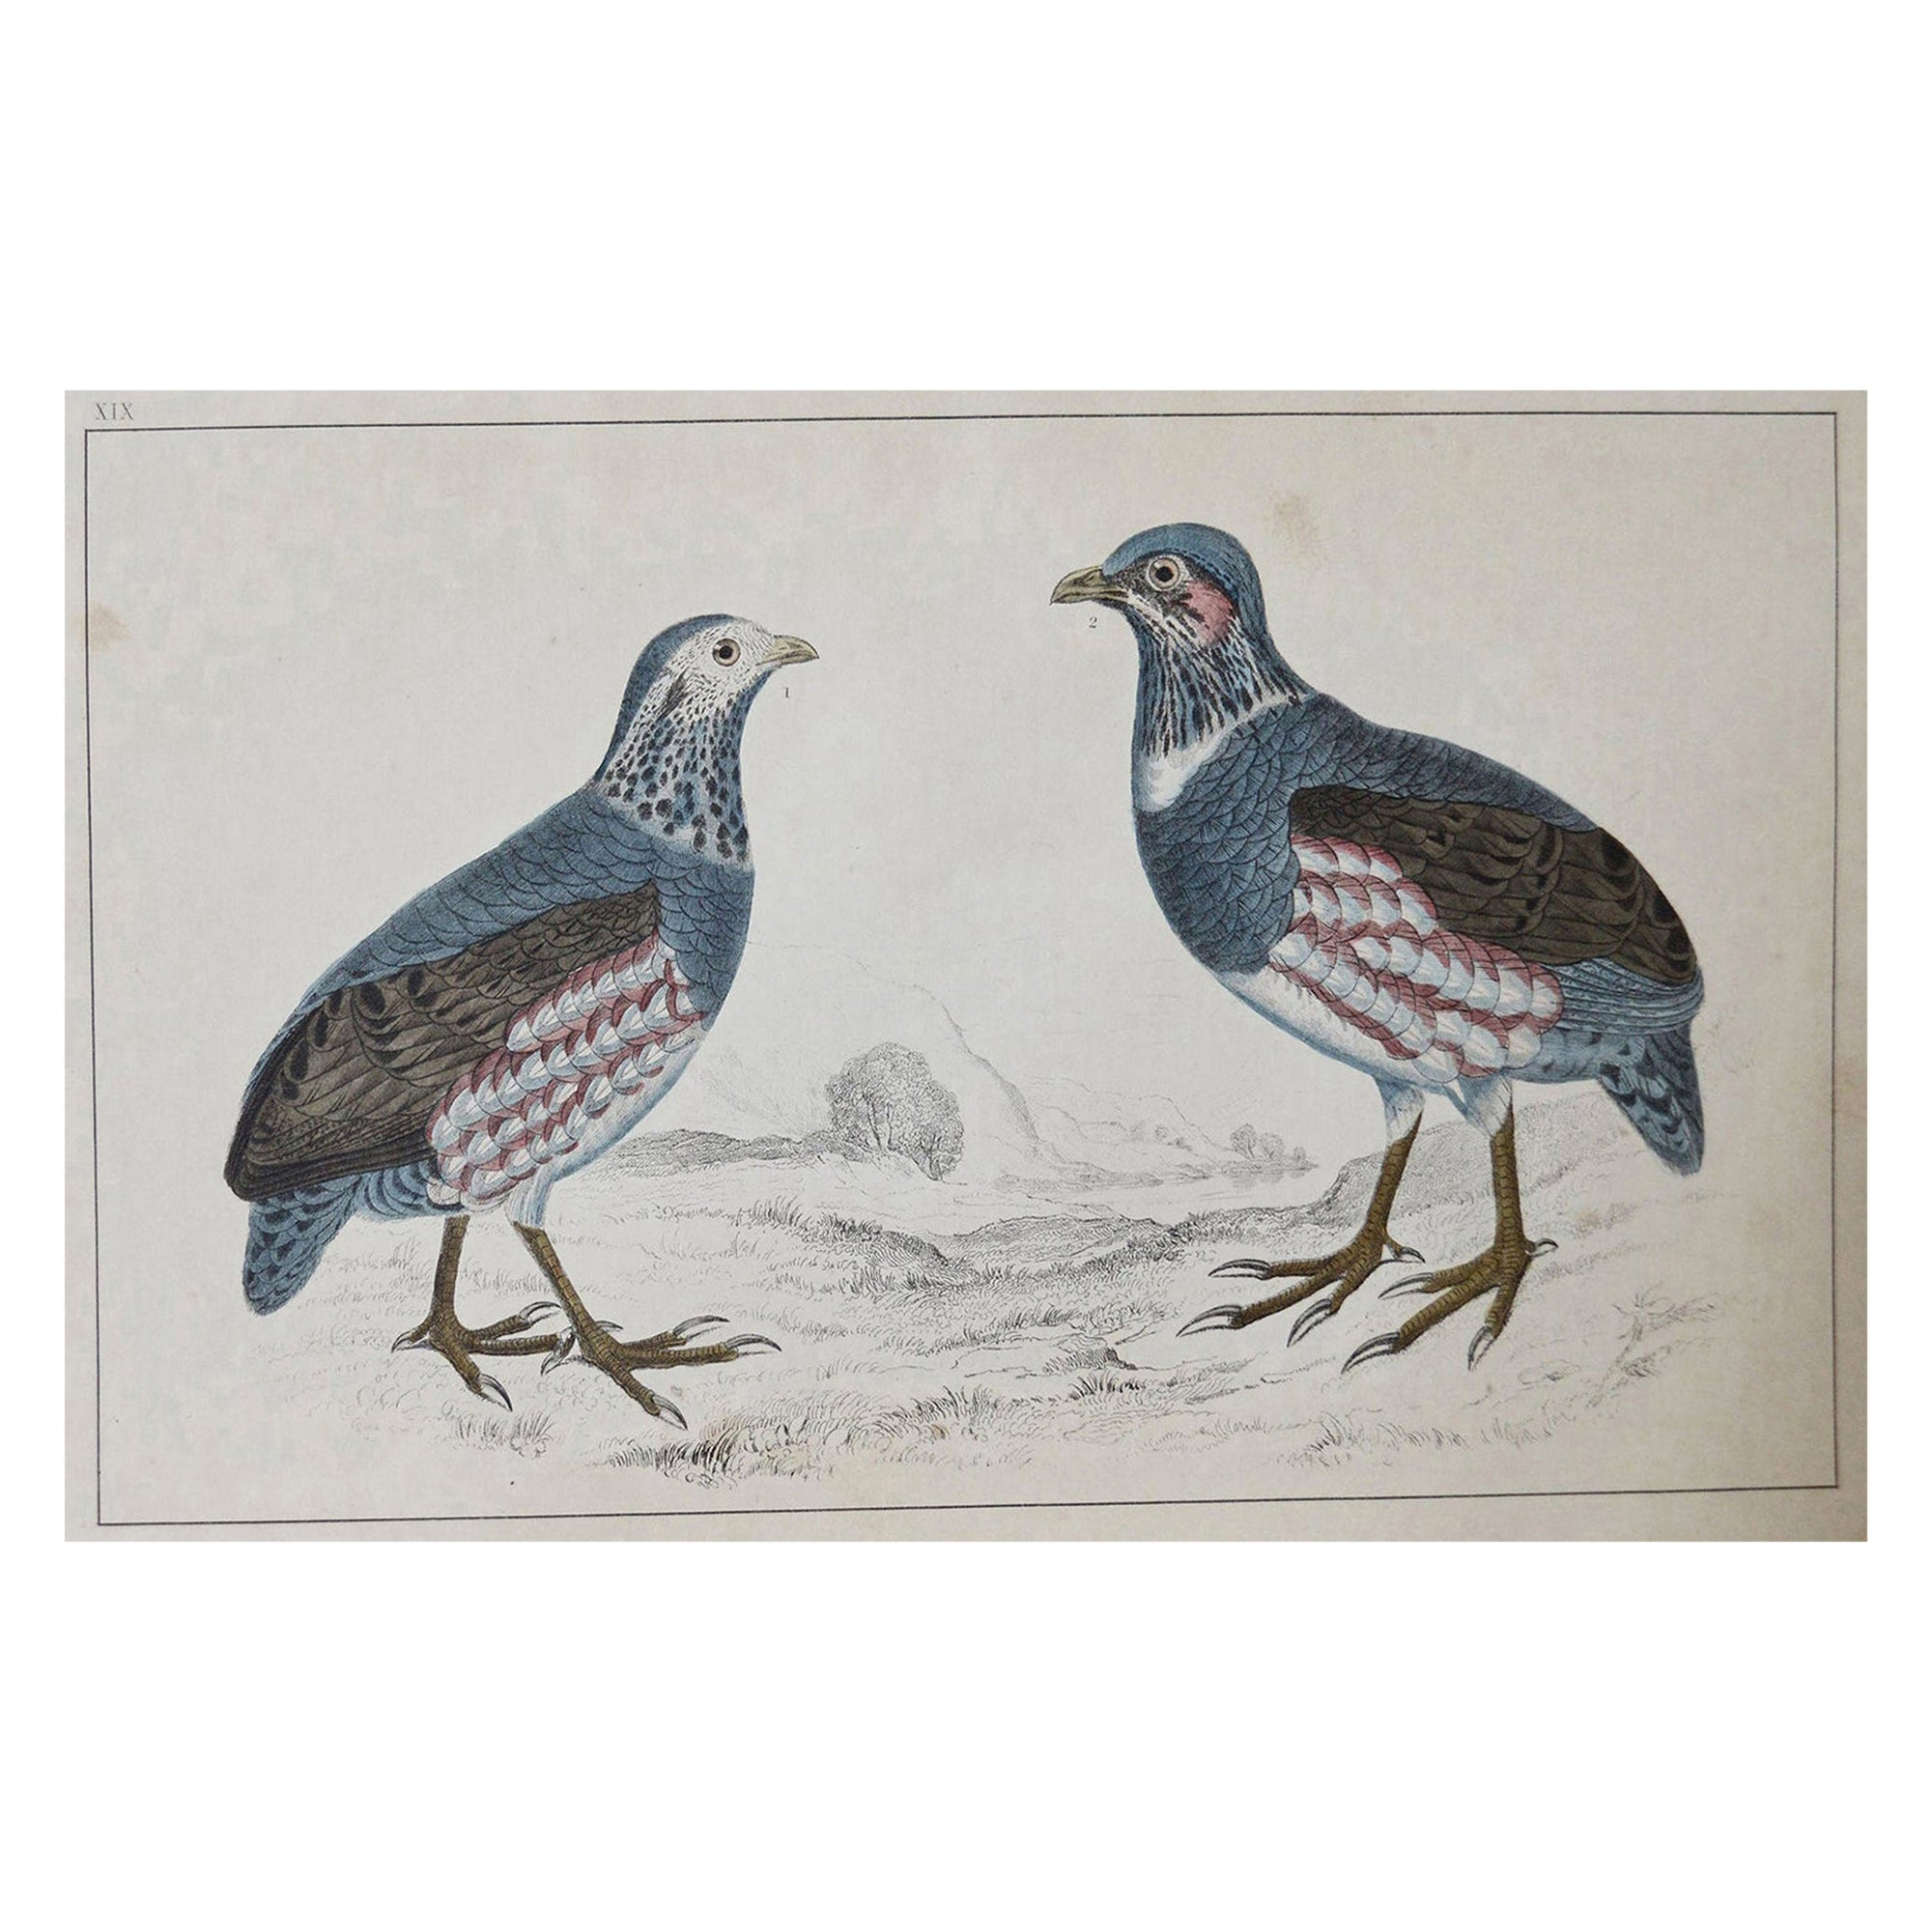 Original Antique Print of Partridge, 1847 'Unframed'